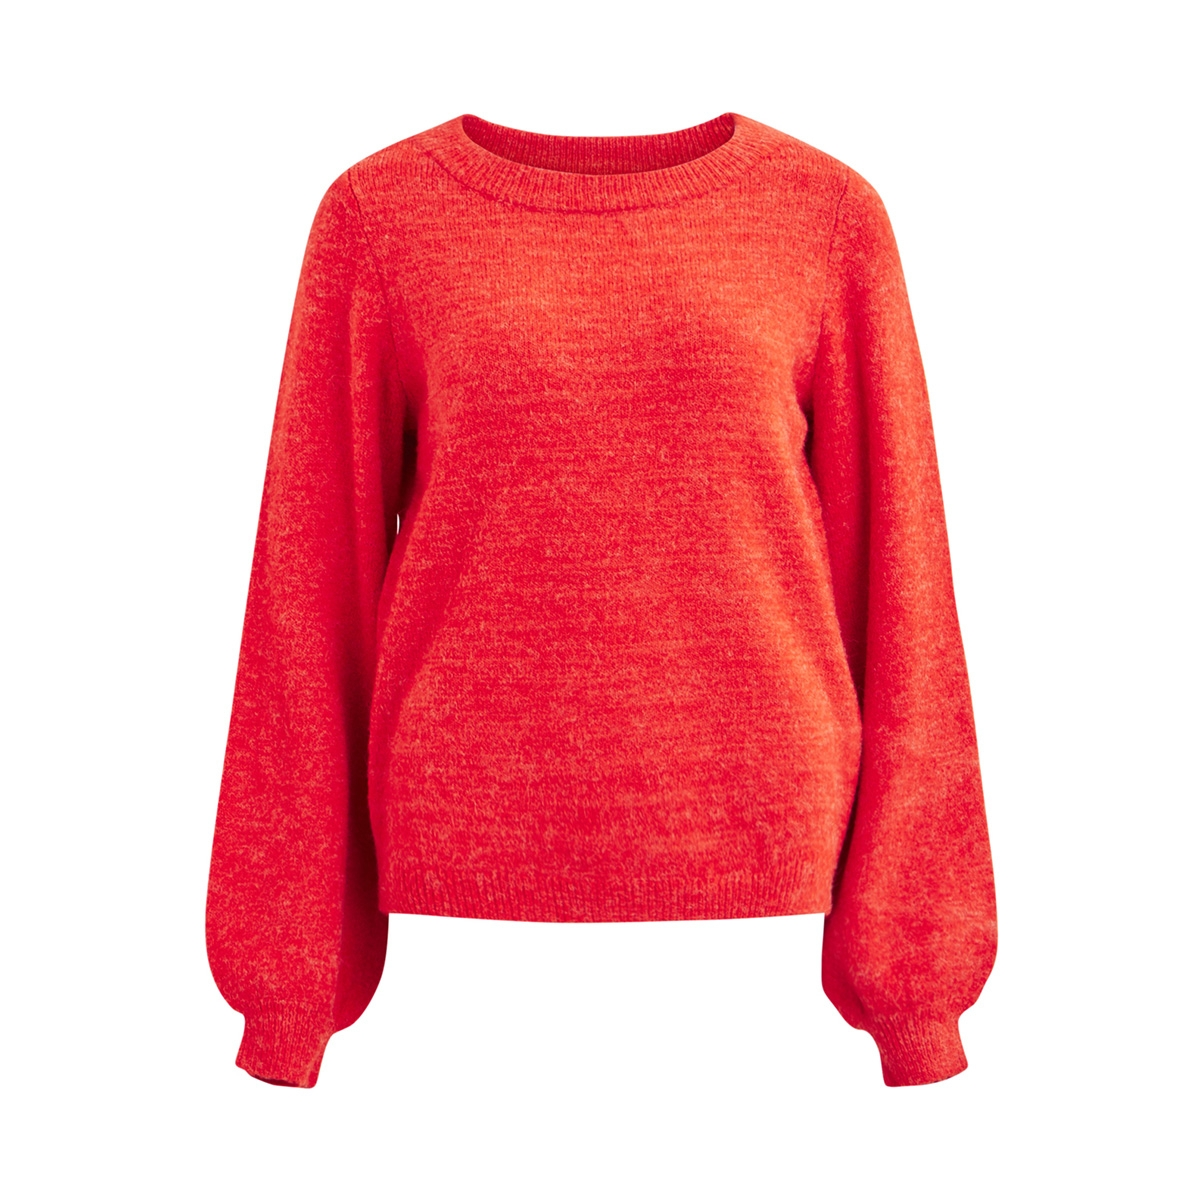 objeve nonsia ls knit pullover seas 23028232 object trui fiery red